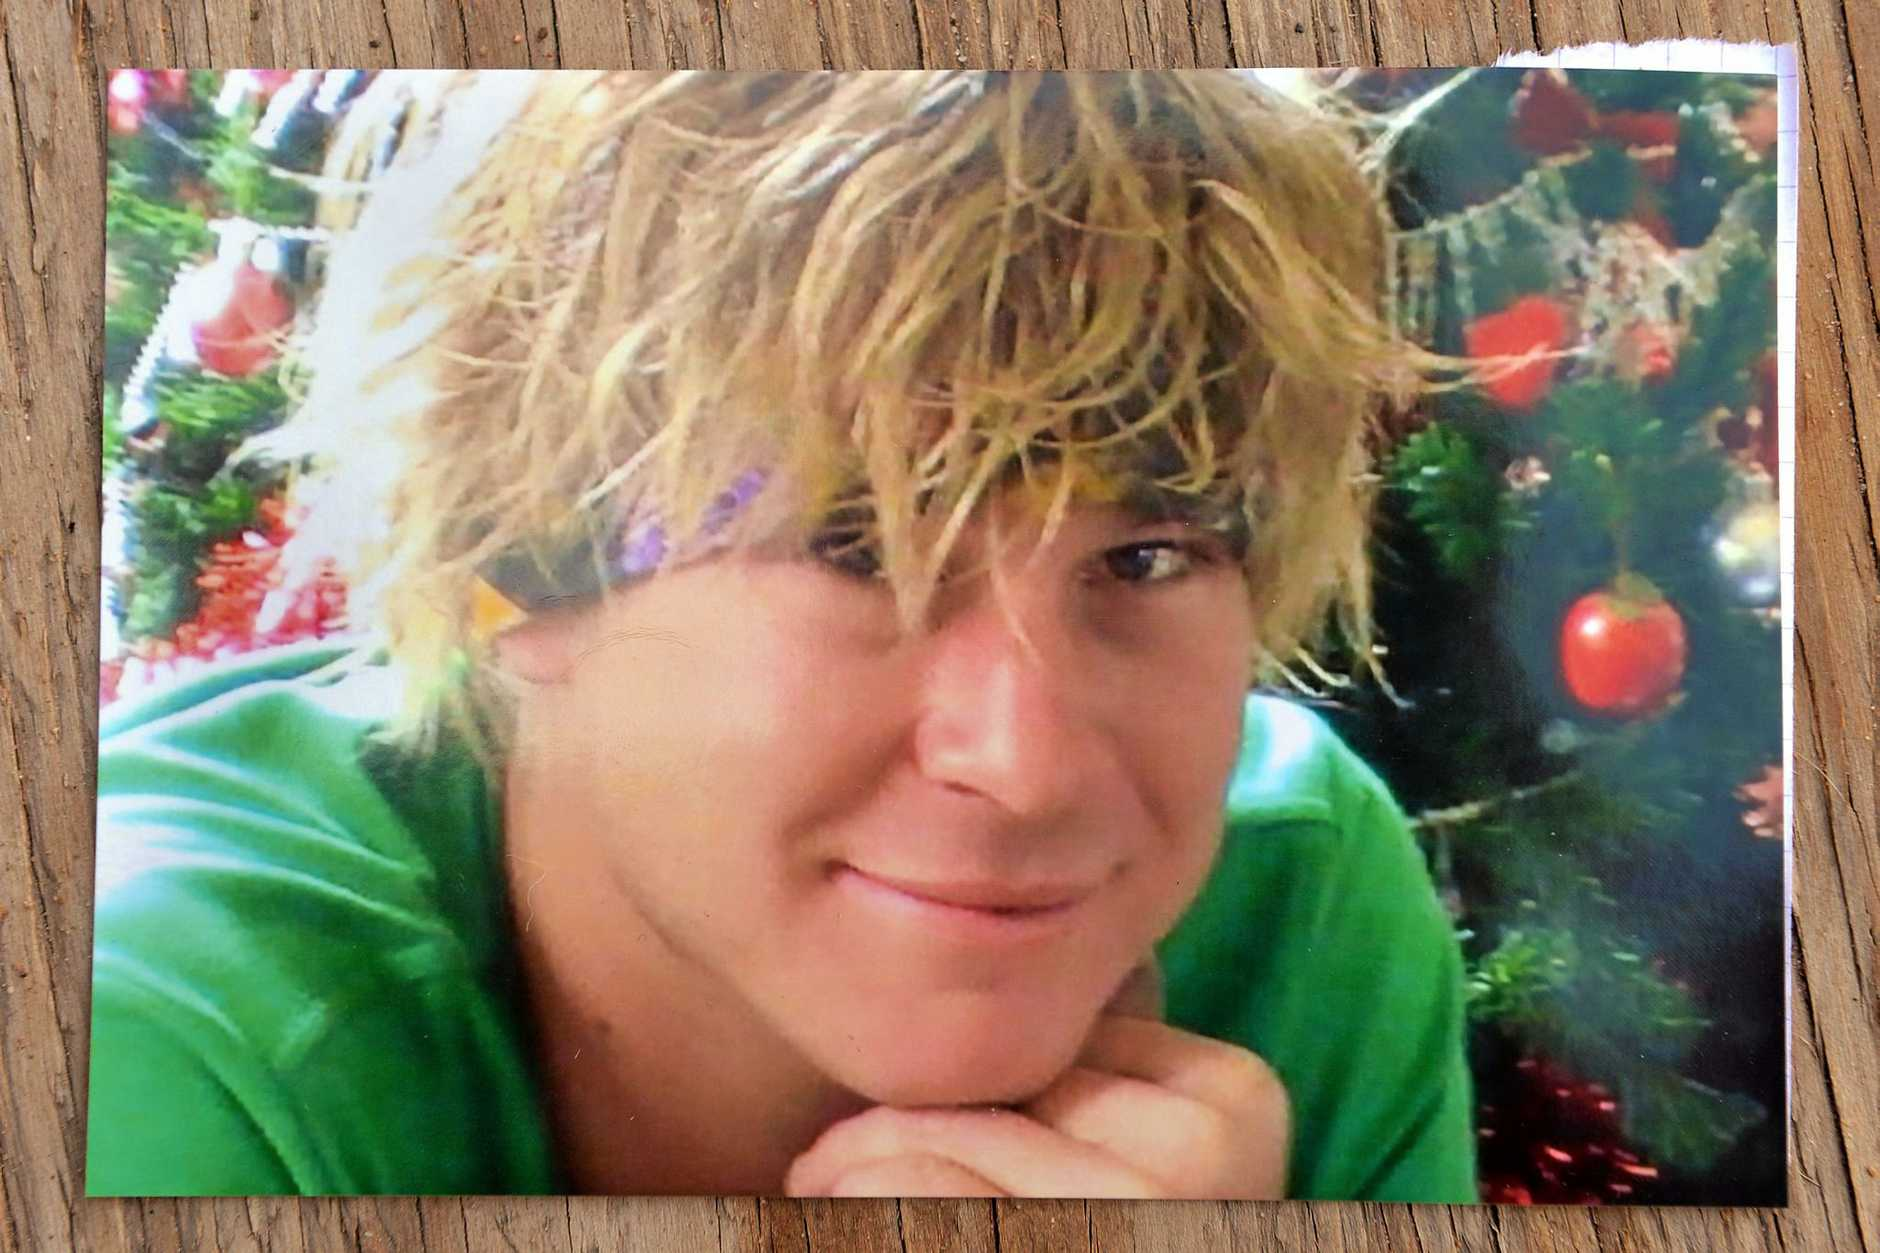 Cory Andrews, pictured here when younger, died after trying to cross Sunshine Motorway on foot in the early hours of Saturday morning. He was 23.